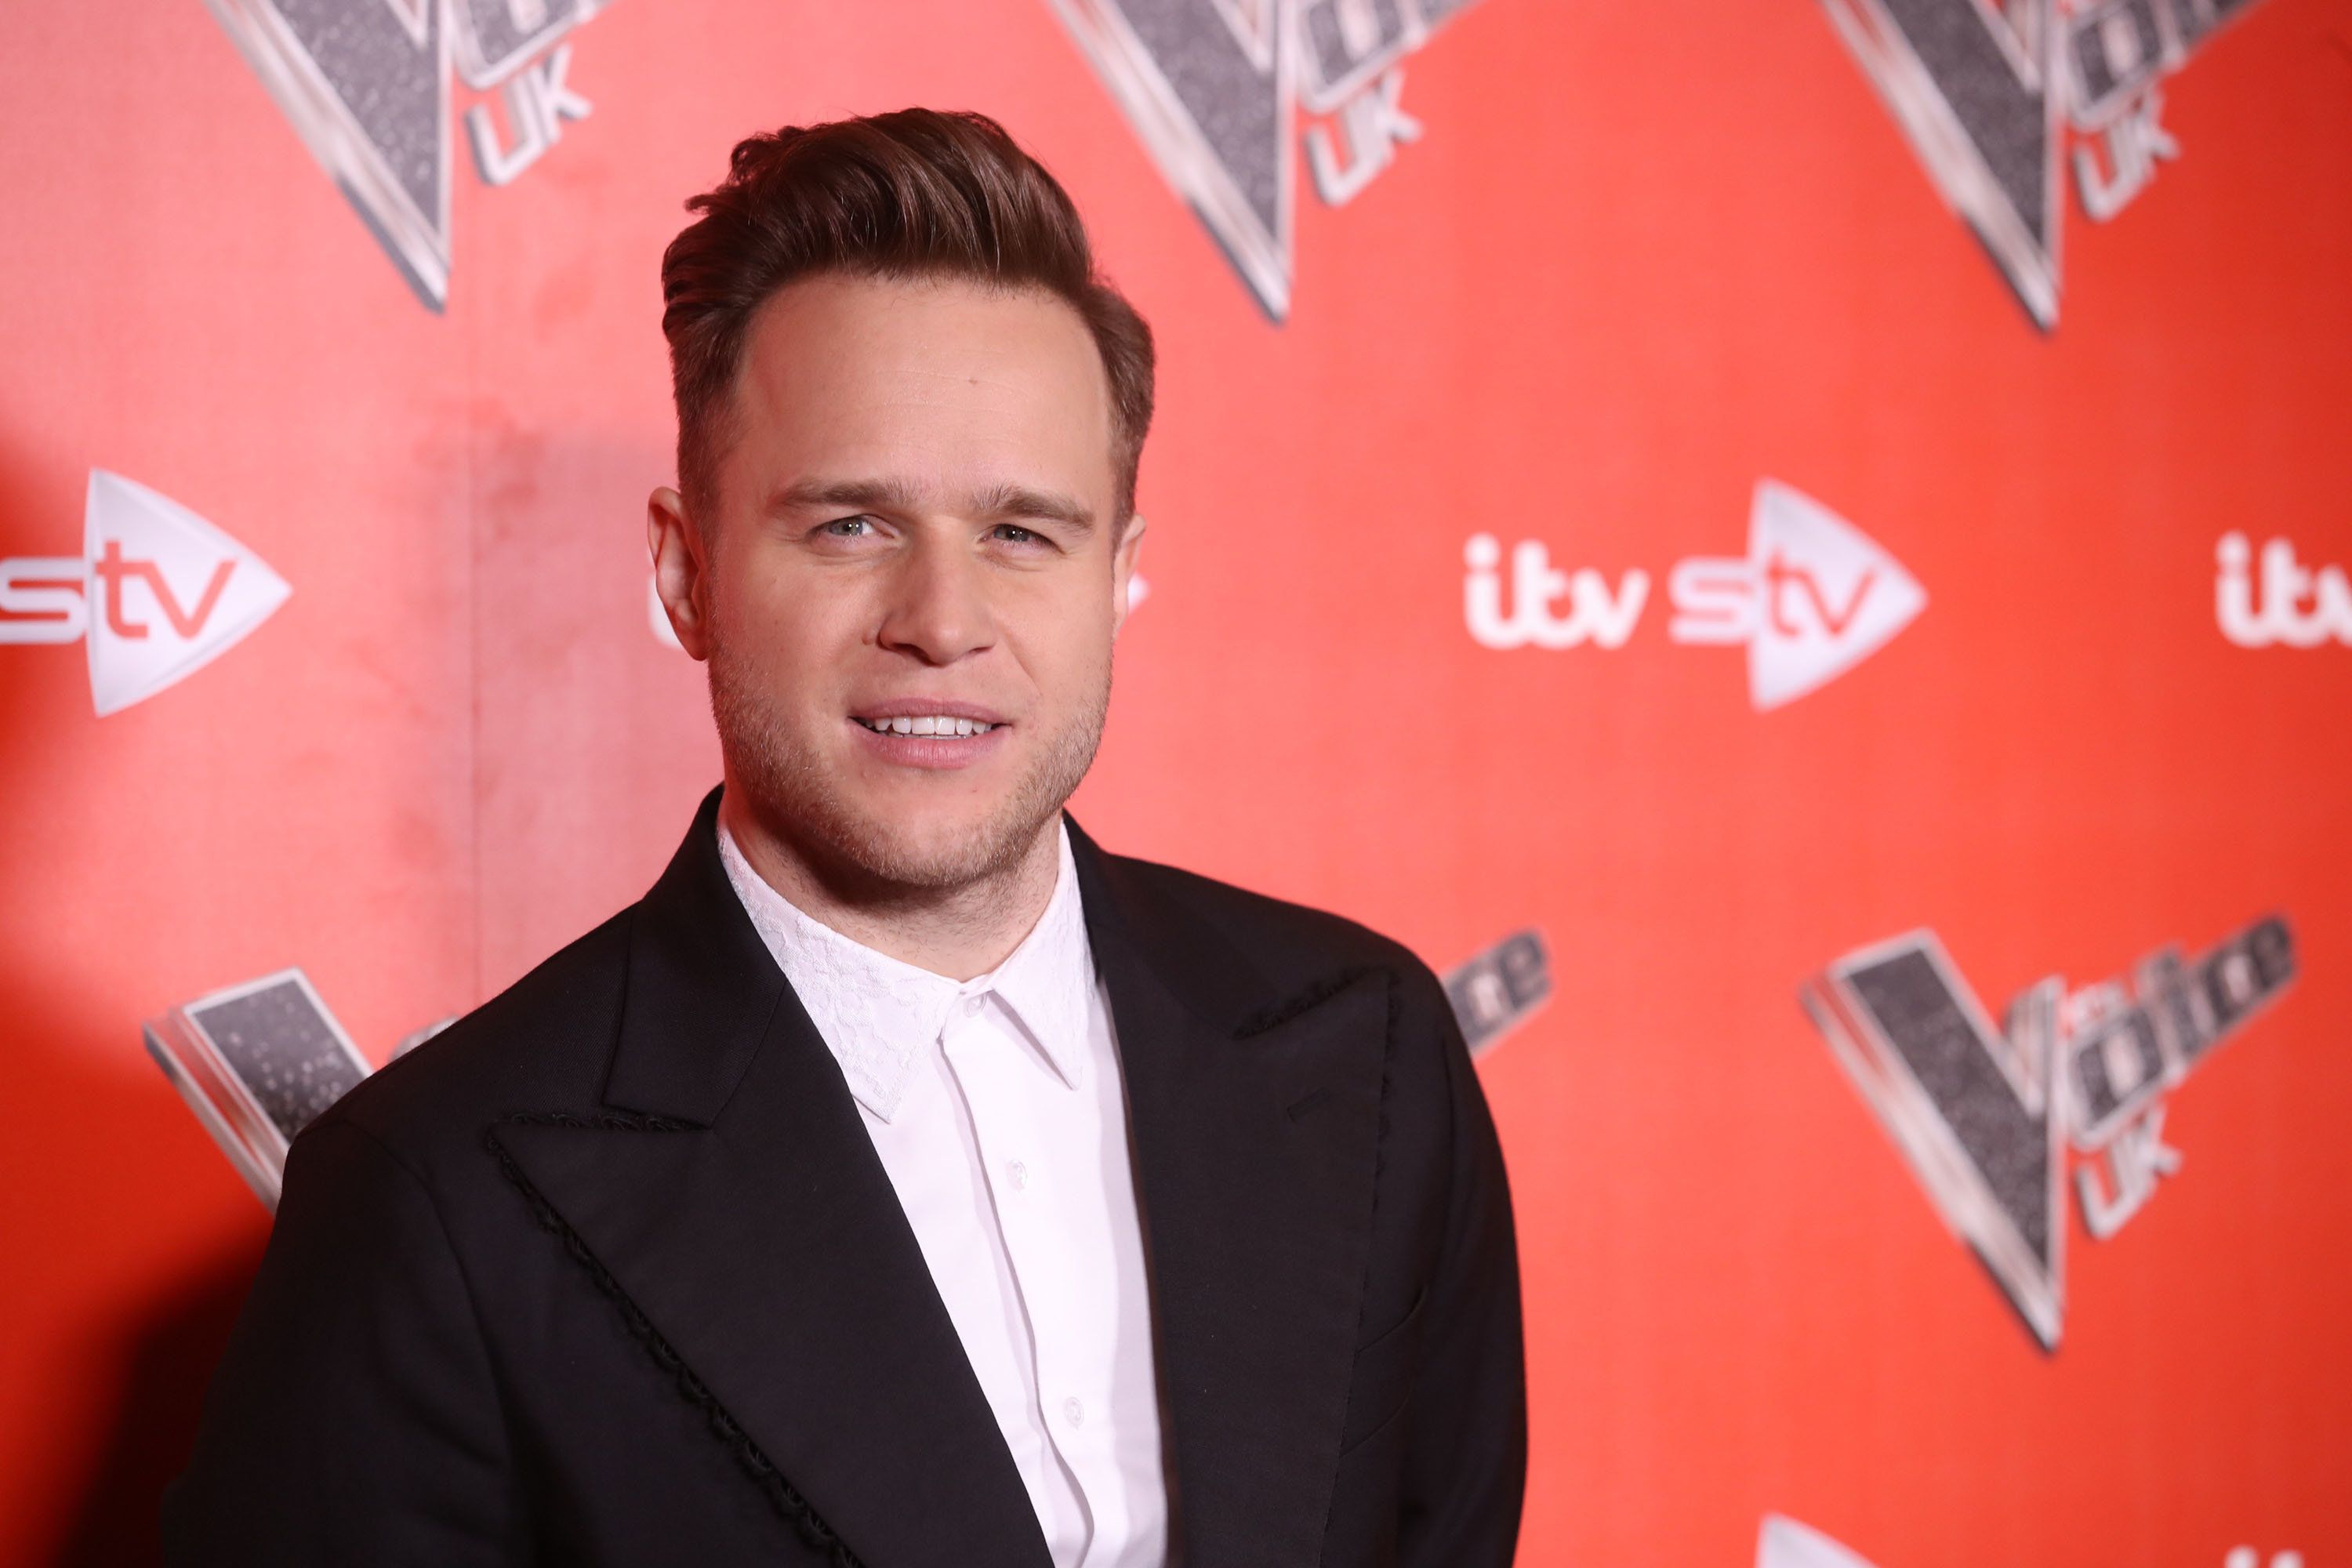 Olly Murs Throws Shade At 'X Factor', Hailing 'The Voice' As 'The Best Show He's Worked On'